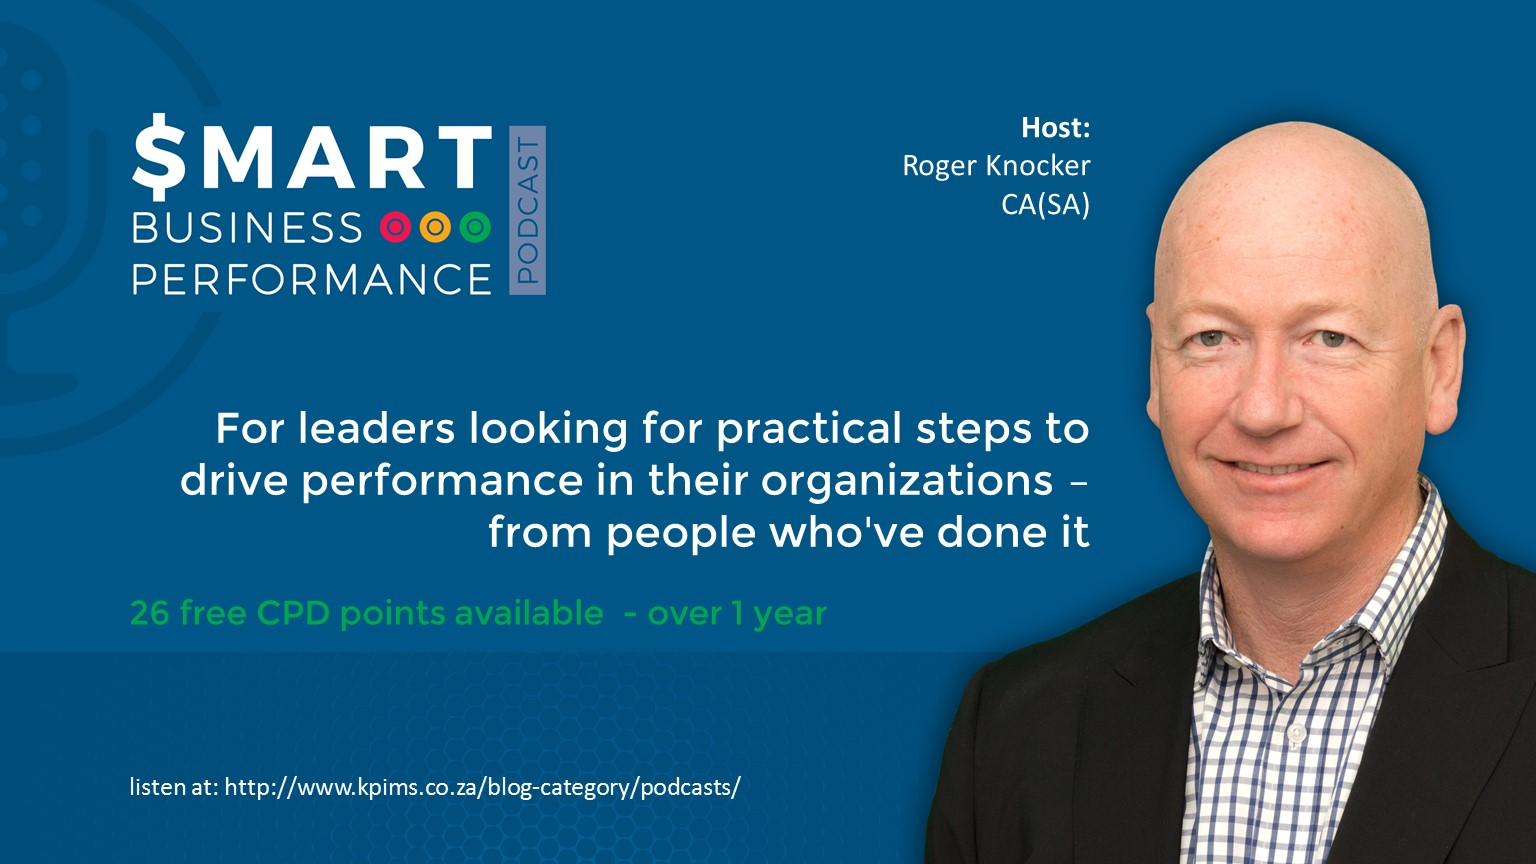 Smart Business Performance Podcast Ad